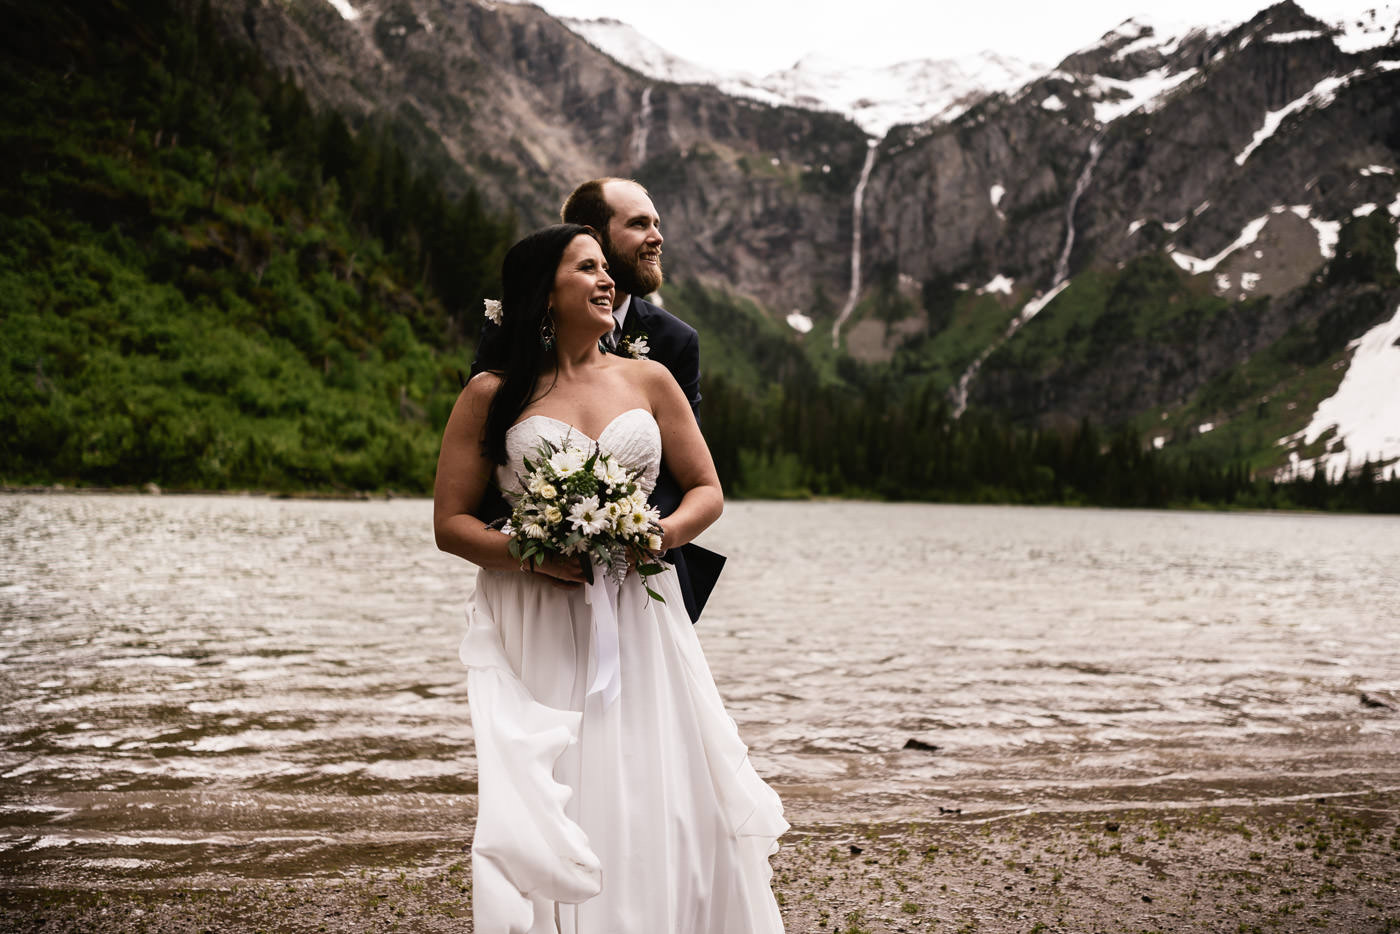 Avalanche Lake Elopement in Montana.